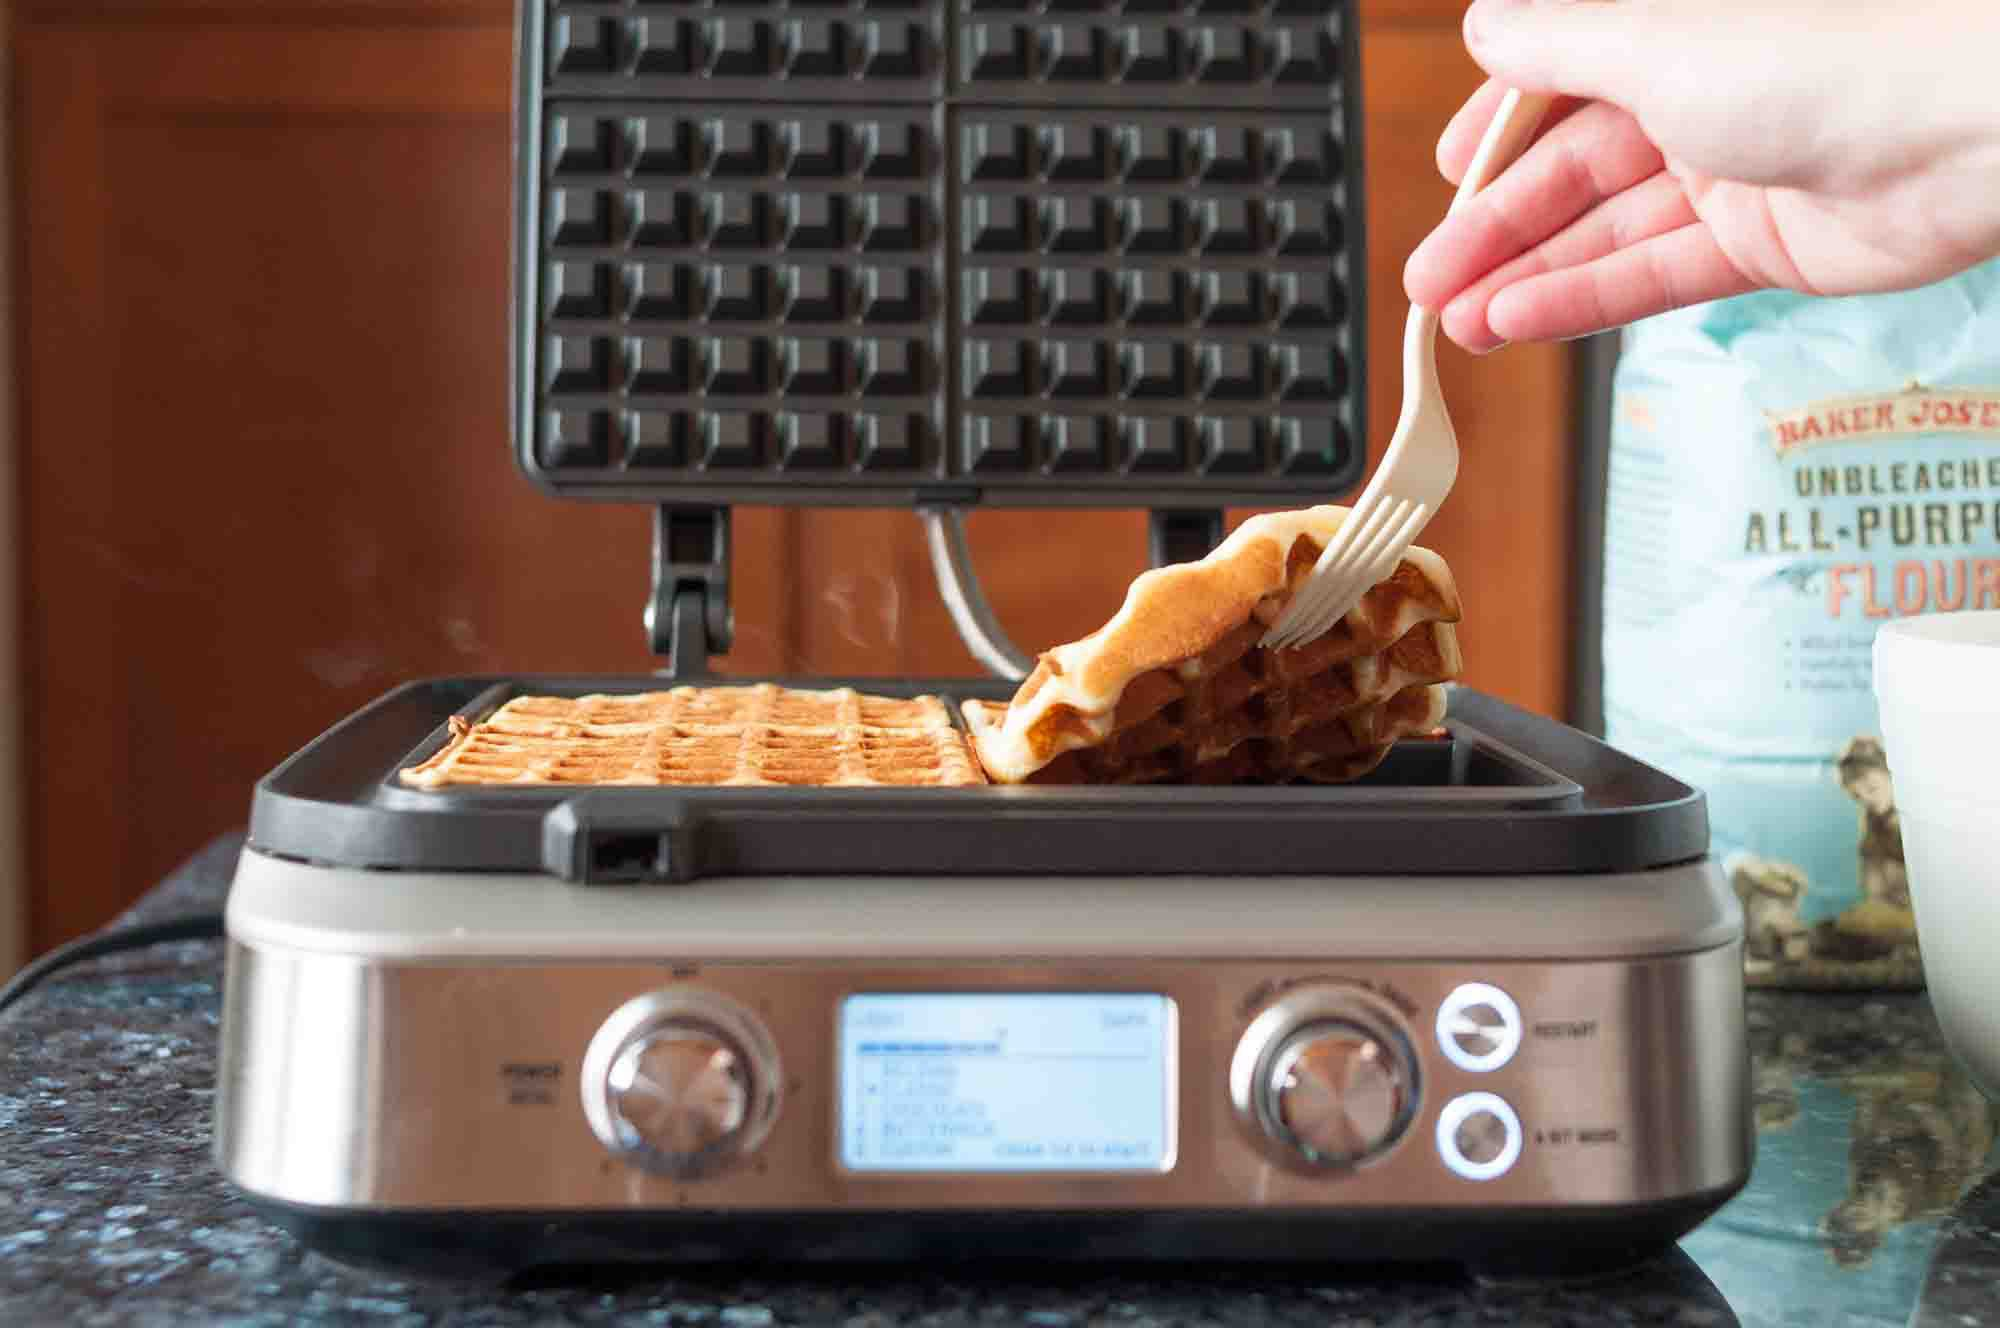 Use a fork to lift the finished waffles out of the waffle iron